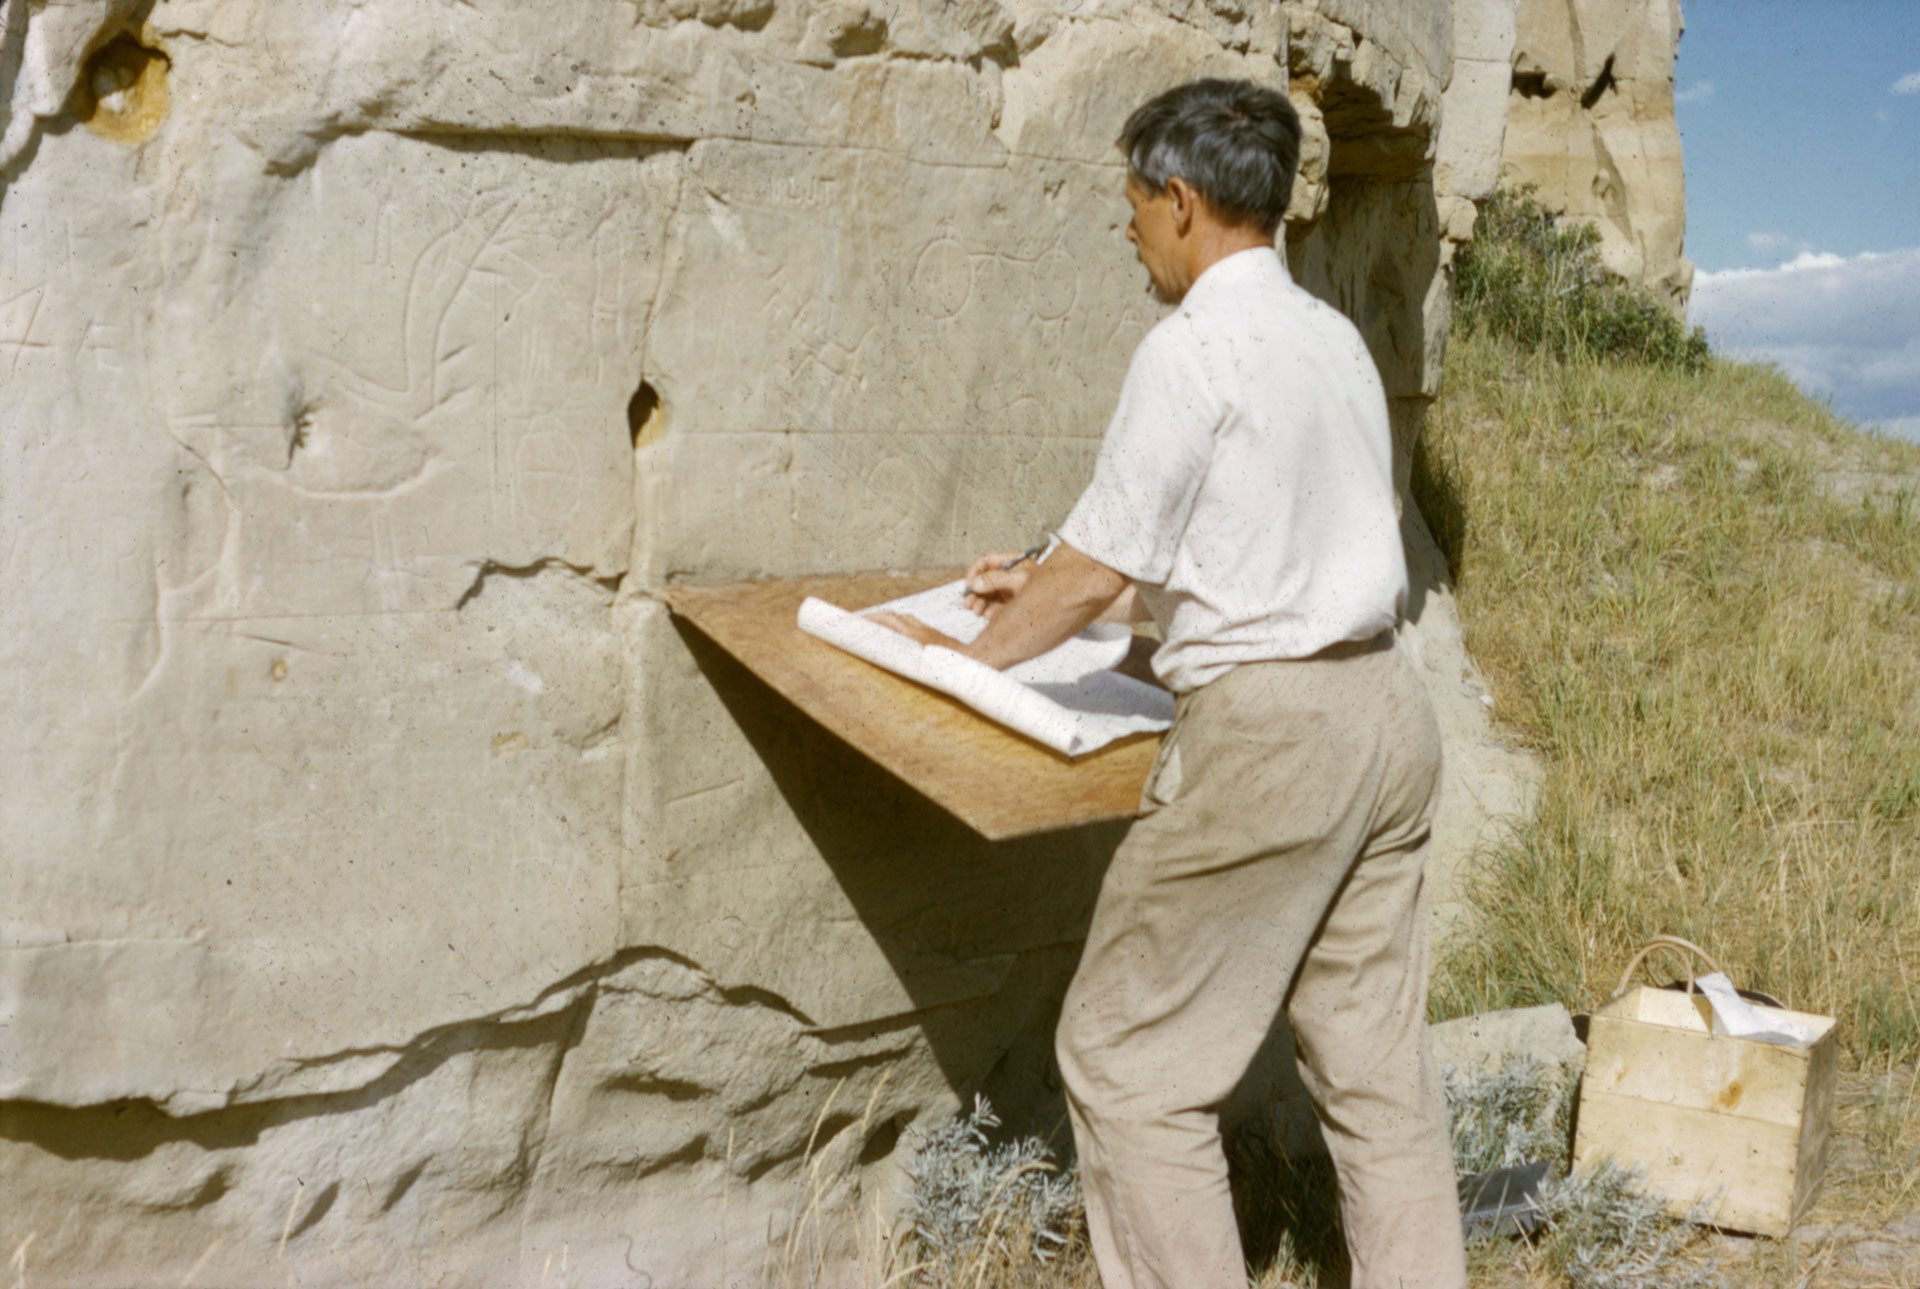 Picture of Selwyn Dewdney checking tracings of petroglyphs at Áísínai'pi, in August 1960